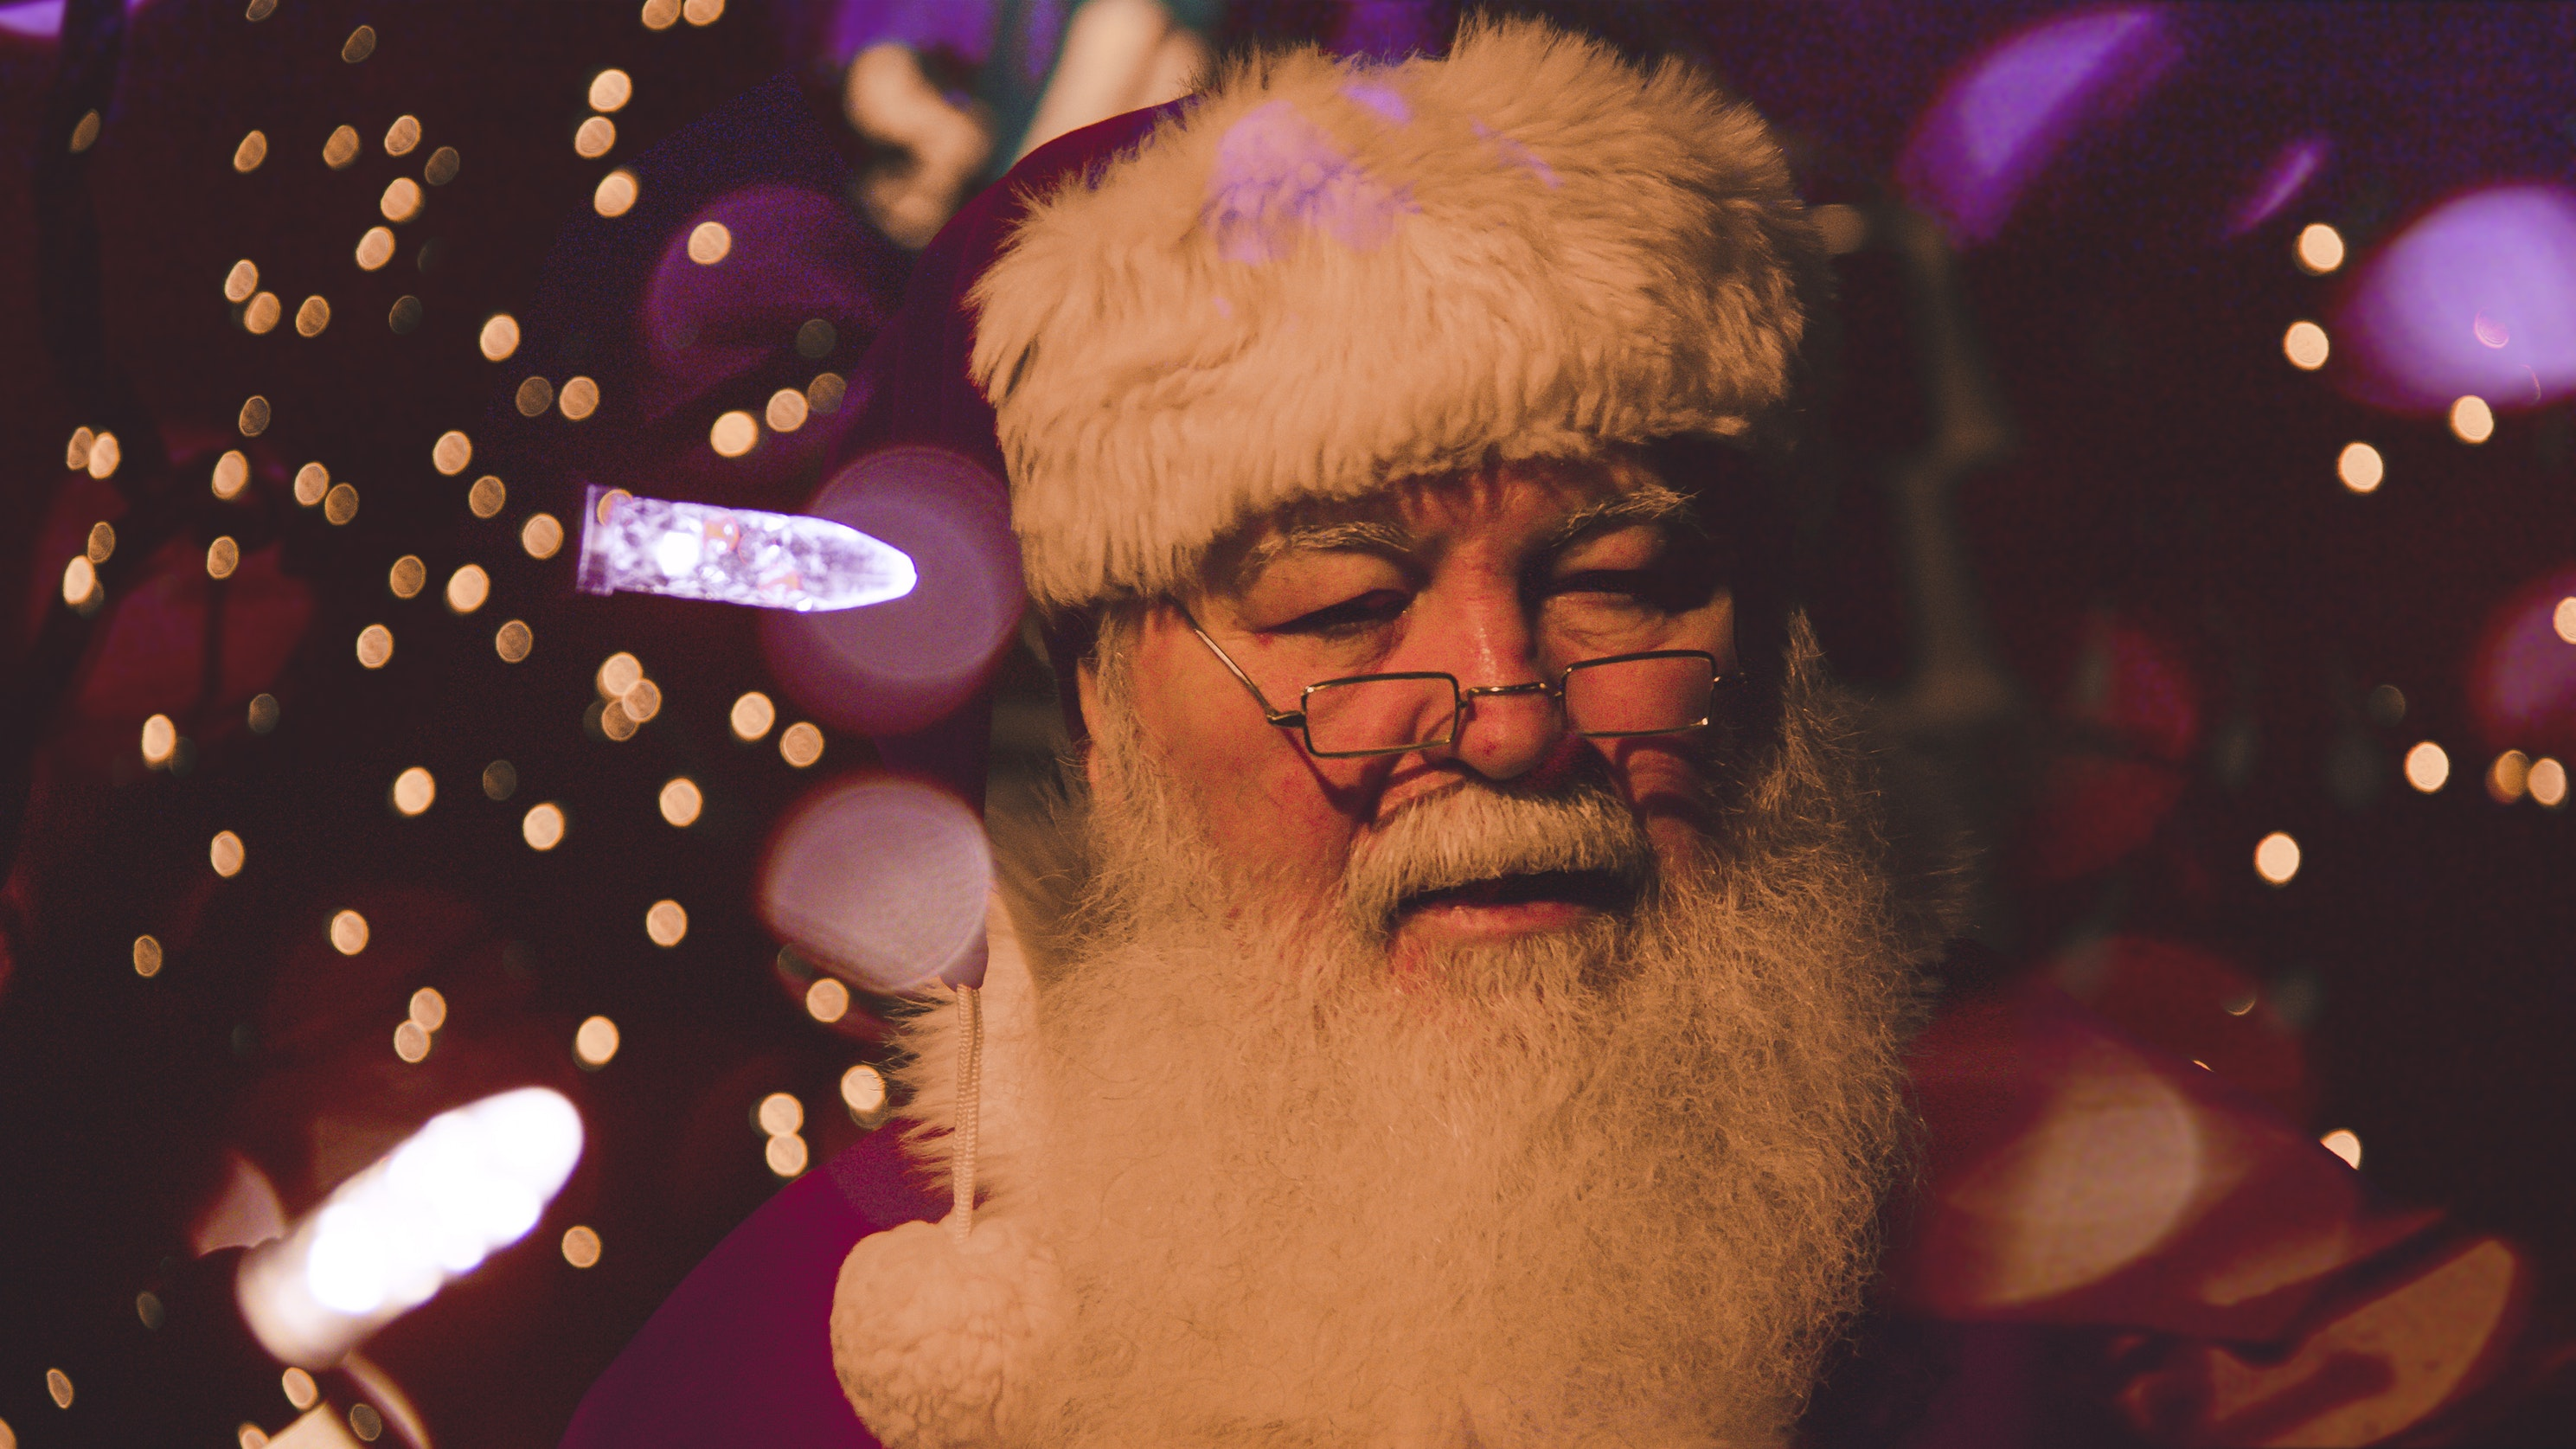 Father Christmas in Cornwall